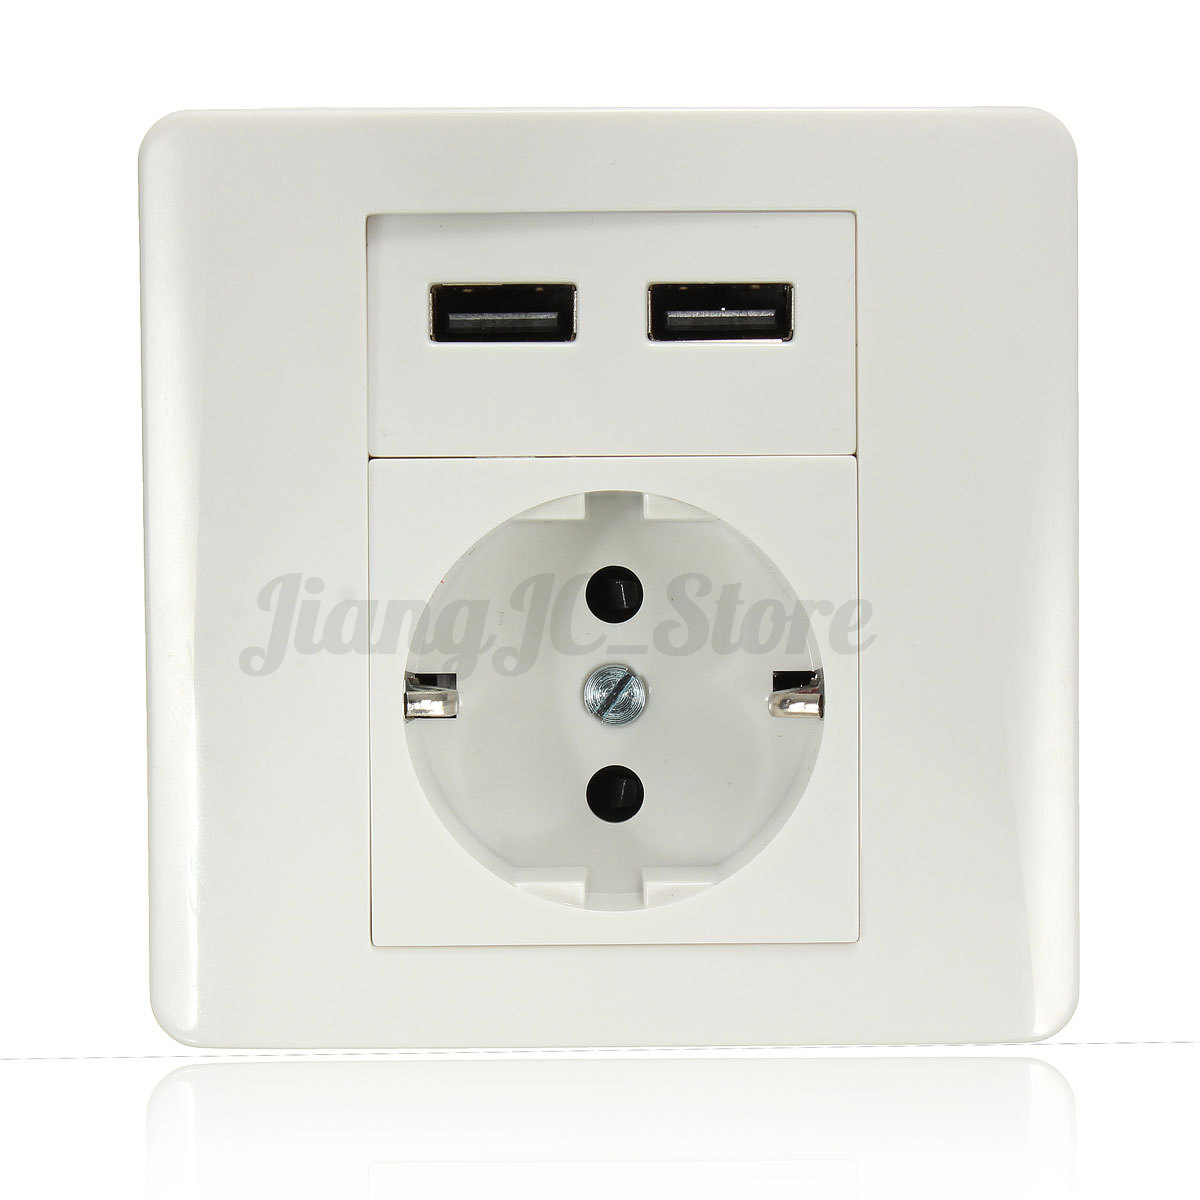 Universal Electrical AU USB Power Outlet Light Switch Wall Socket TV ...